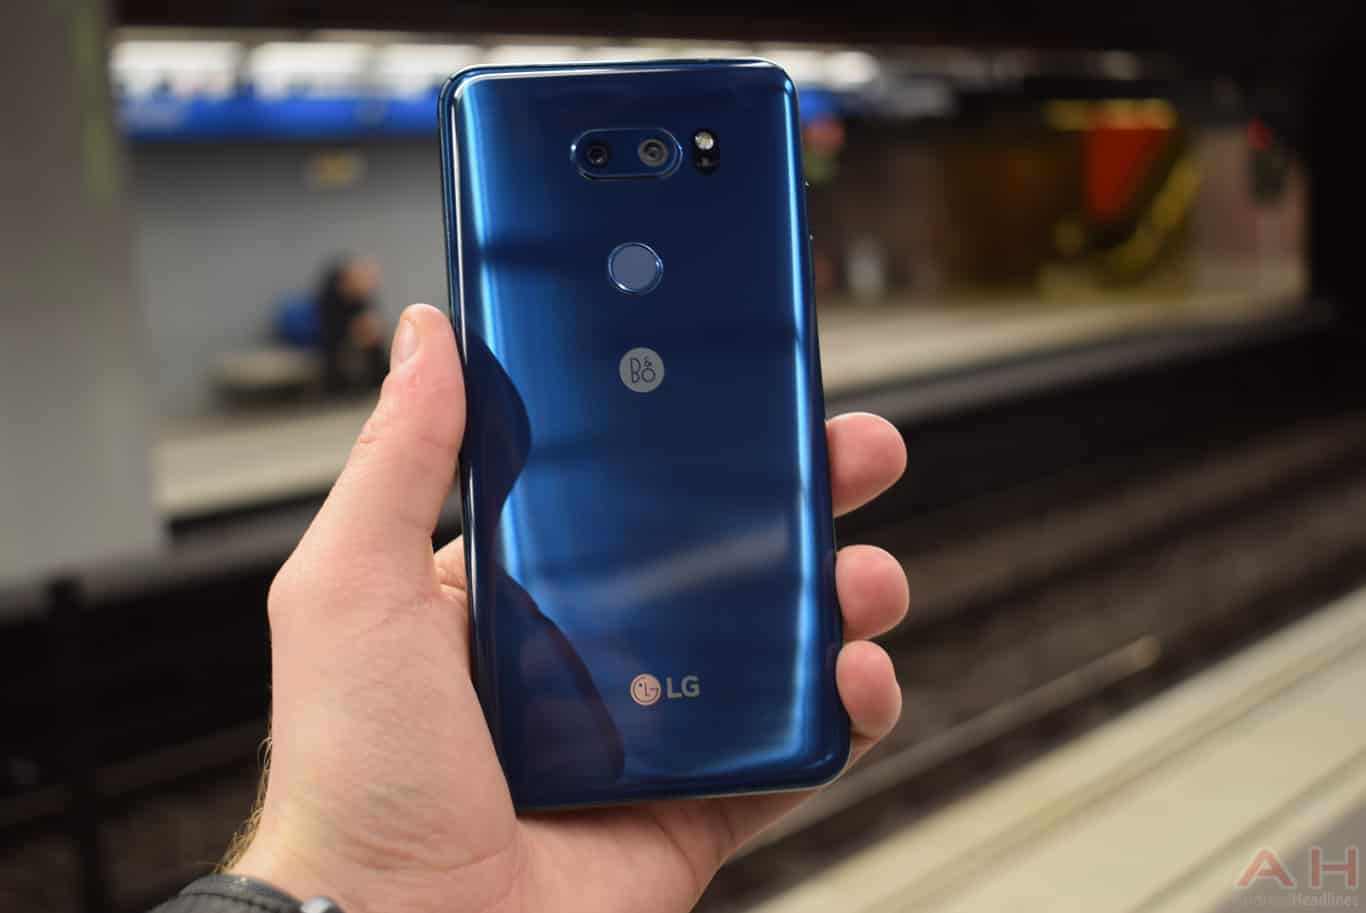 LG V30S ThinQ is announced